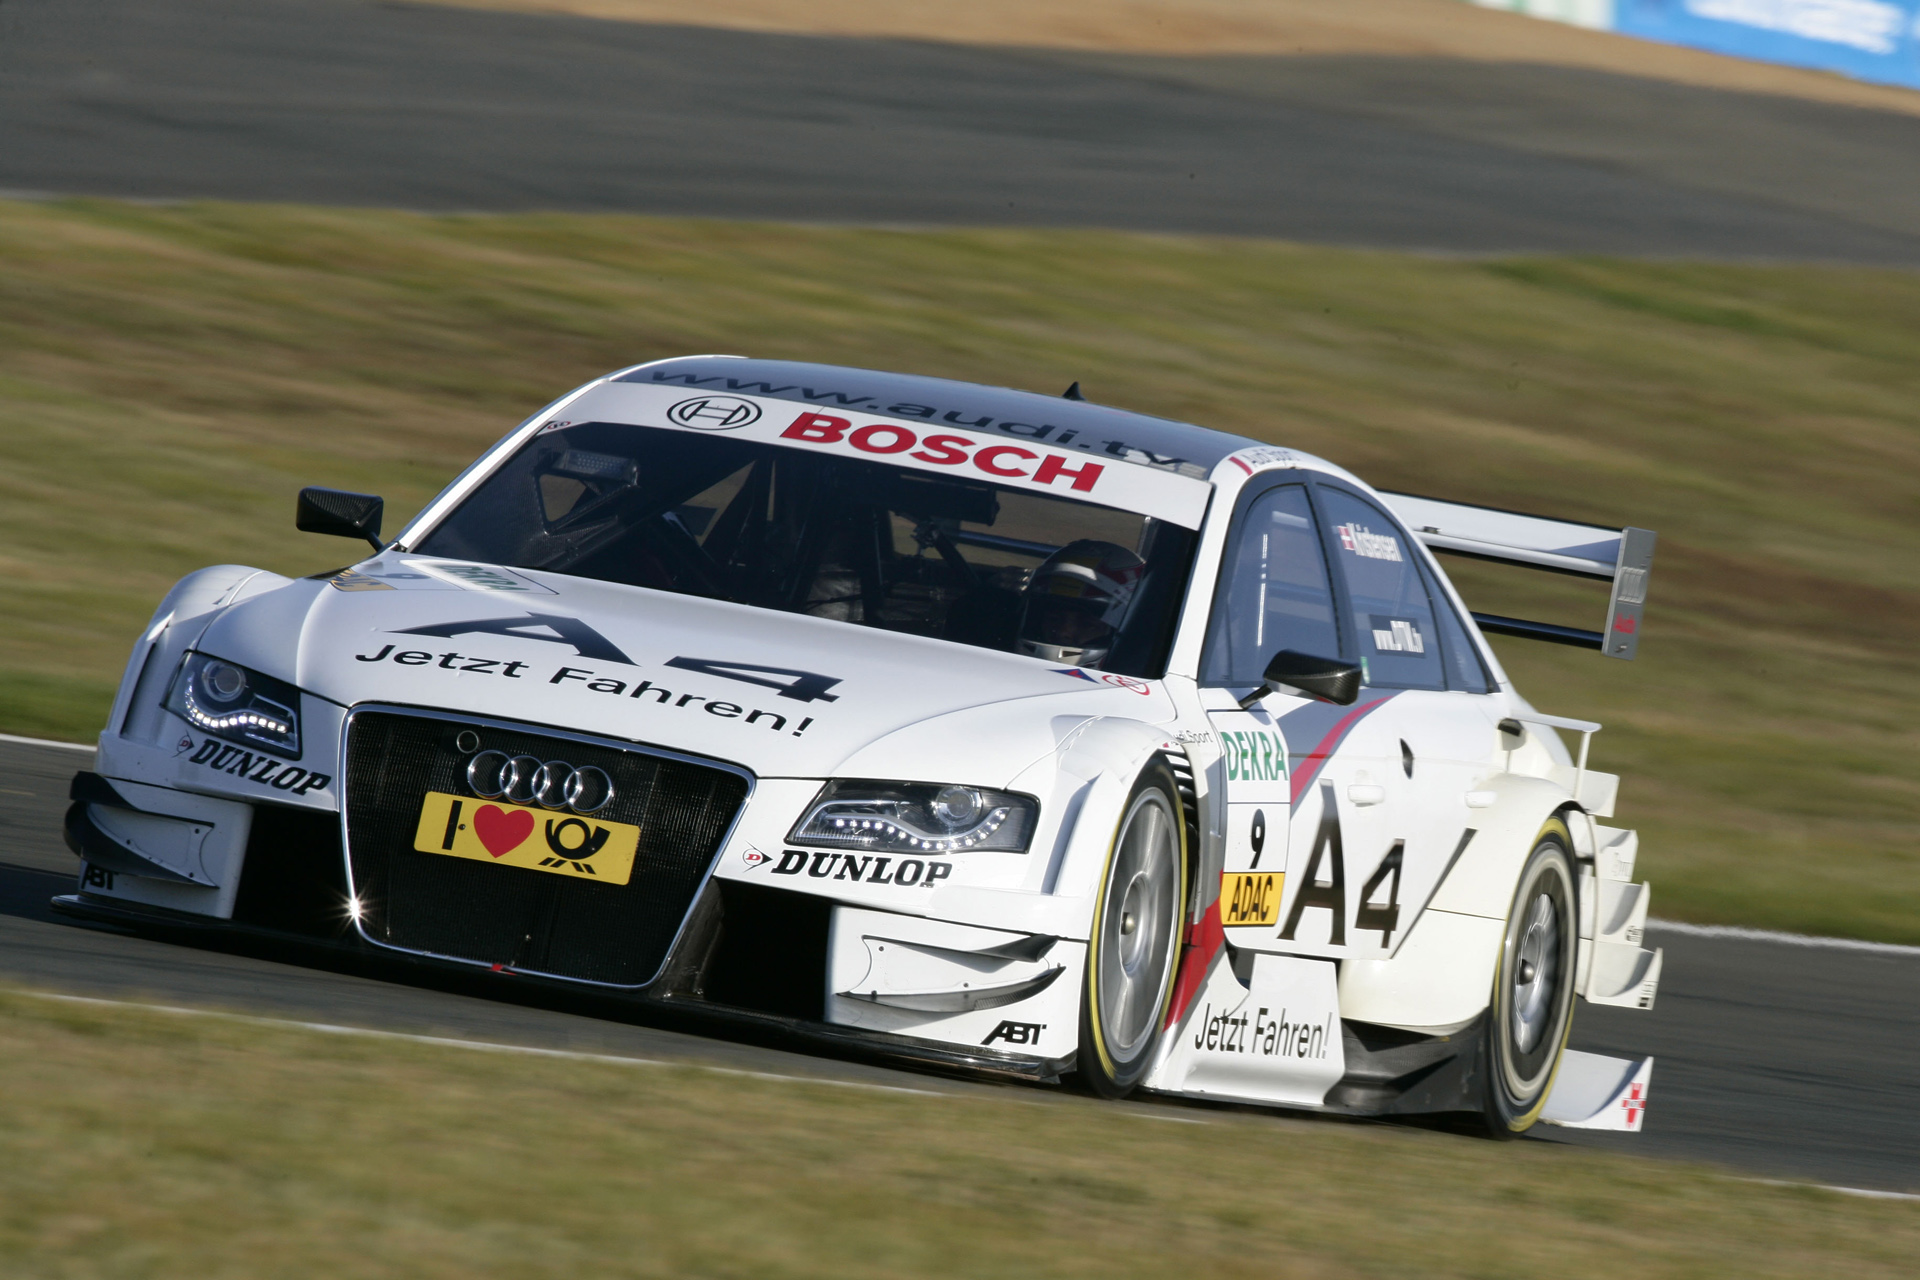 Audi A4 Dtm Picture 69909 Audi Photo Gallery